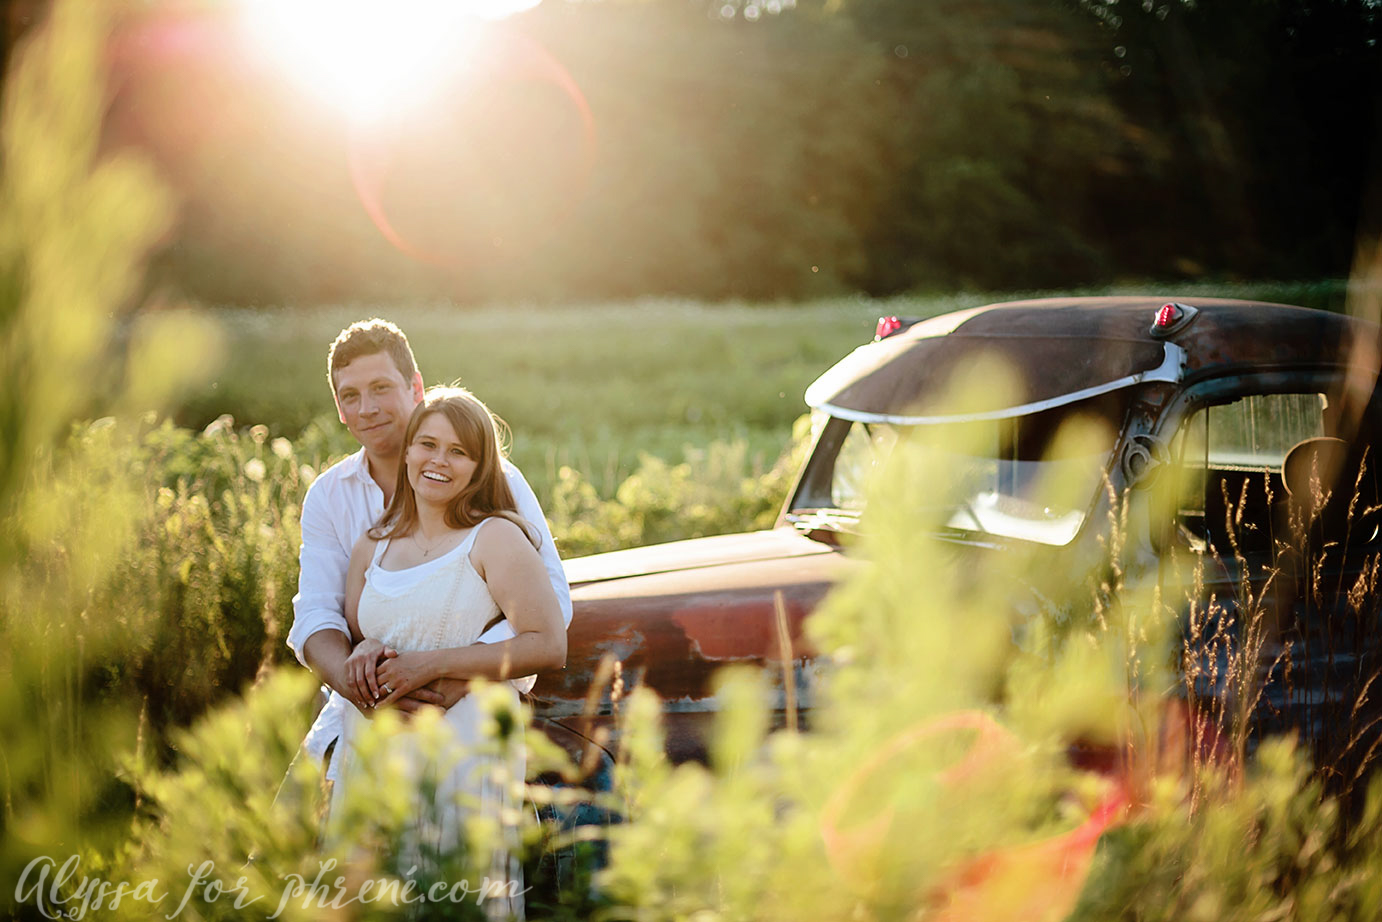 Grand_Rapids_Engagment_Photographer12.jpg